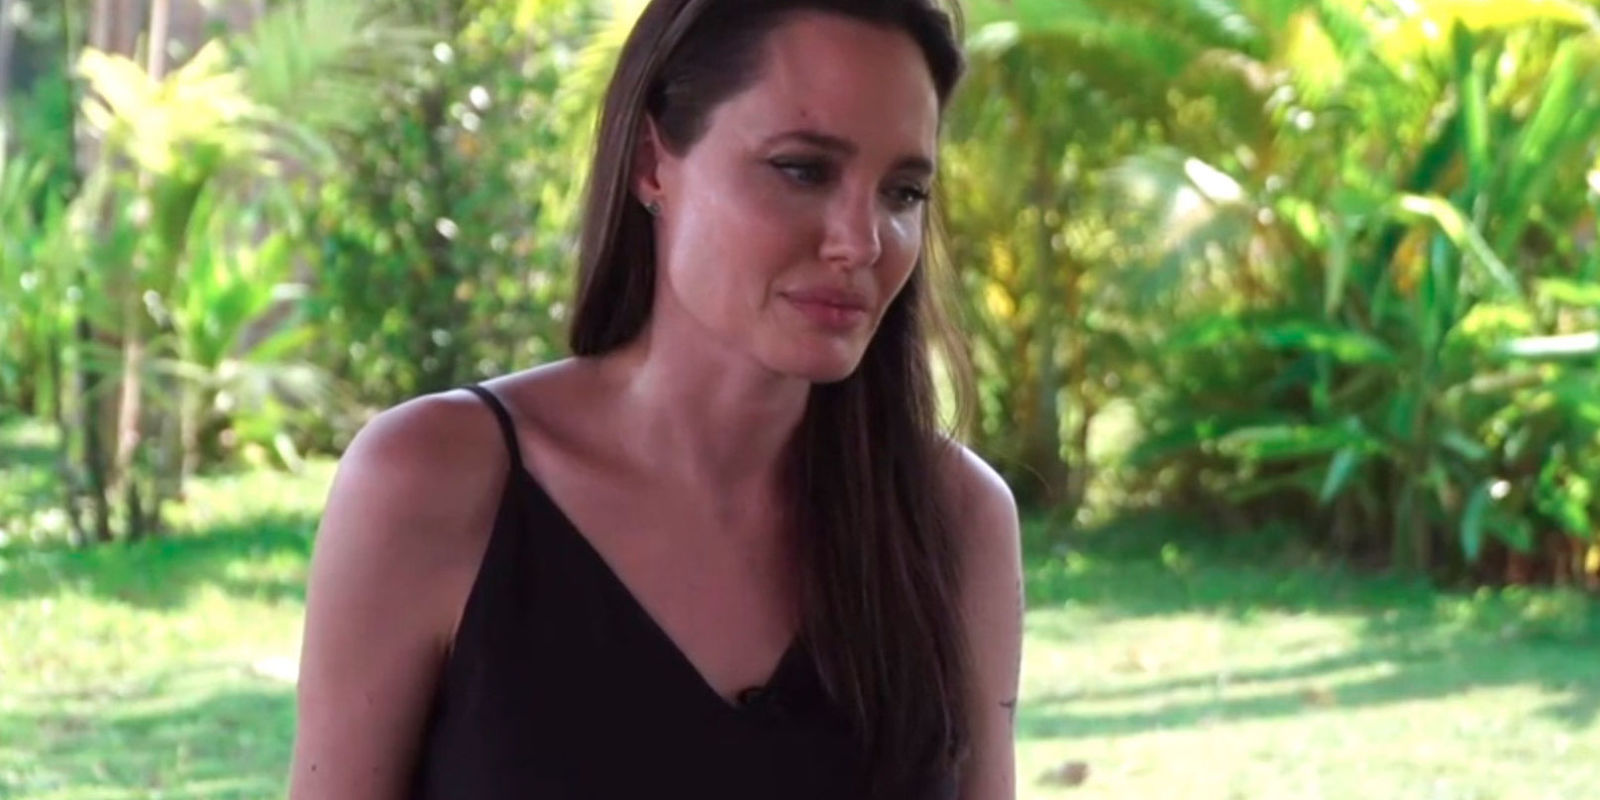 angelina jolie breaks silence after marriage breakdown during her interview angelina bbc news correspondent yalda hakim asked an incident occurred which led to your separation but we also know that you